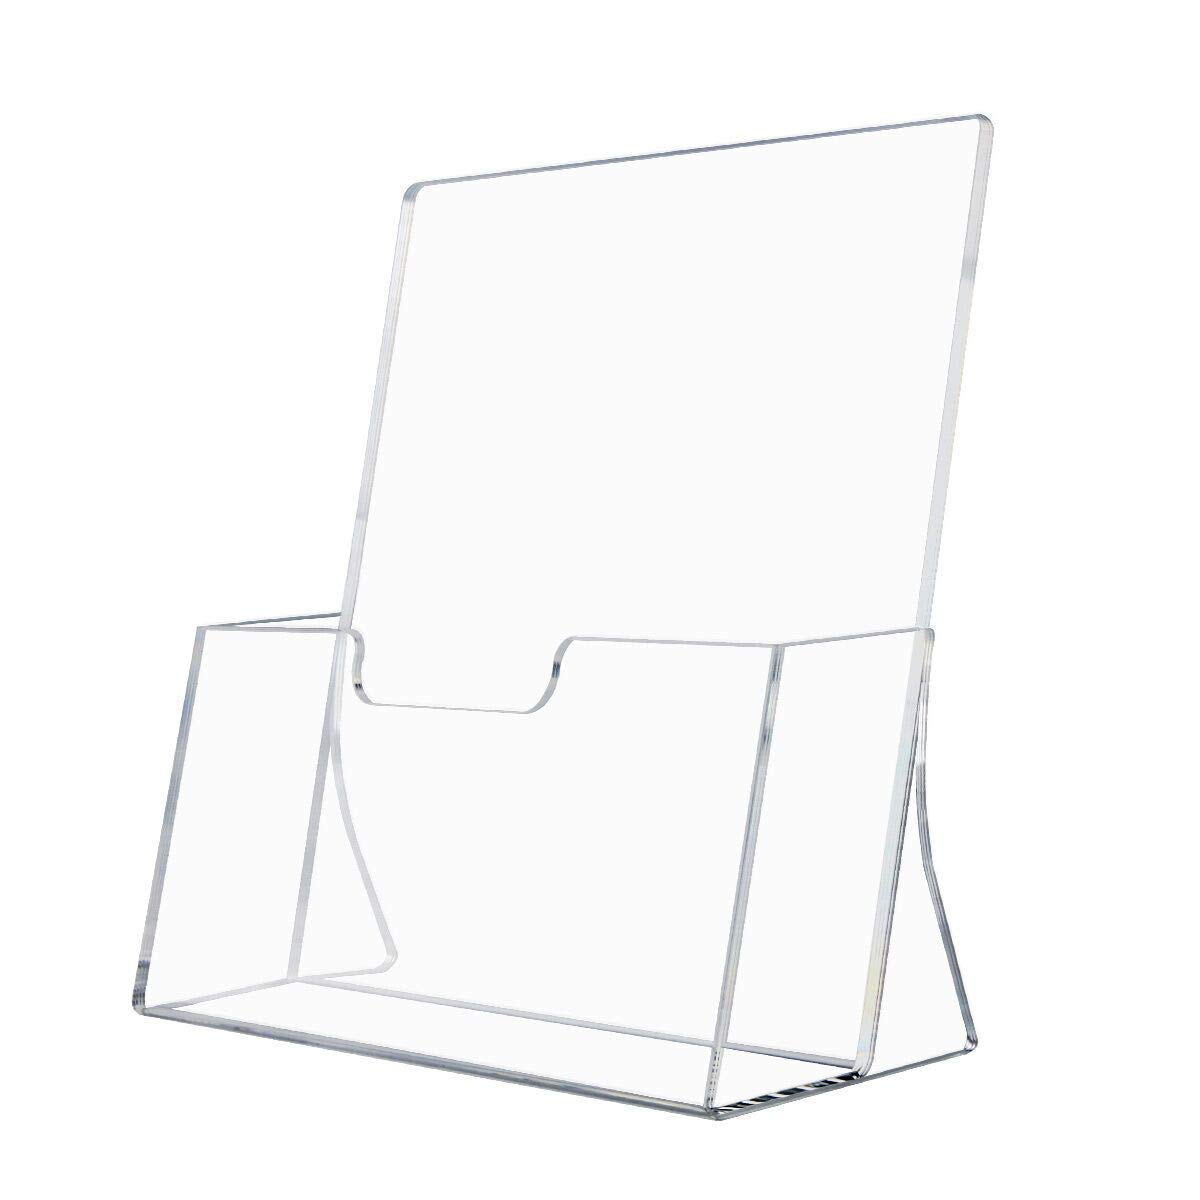 NIUBEE Acrylic 8.5x11 Brochure Holder Unbreakable Box Package,Clear Plastic Table Top Booklet Pamphlet Catalog Magazine Display(2 mm Thick,2 Pack)